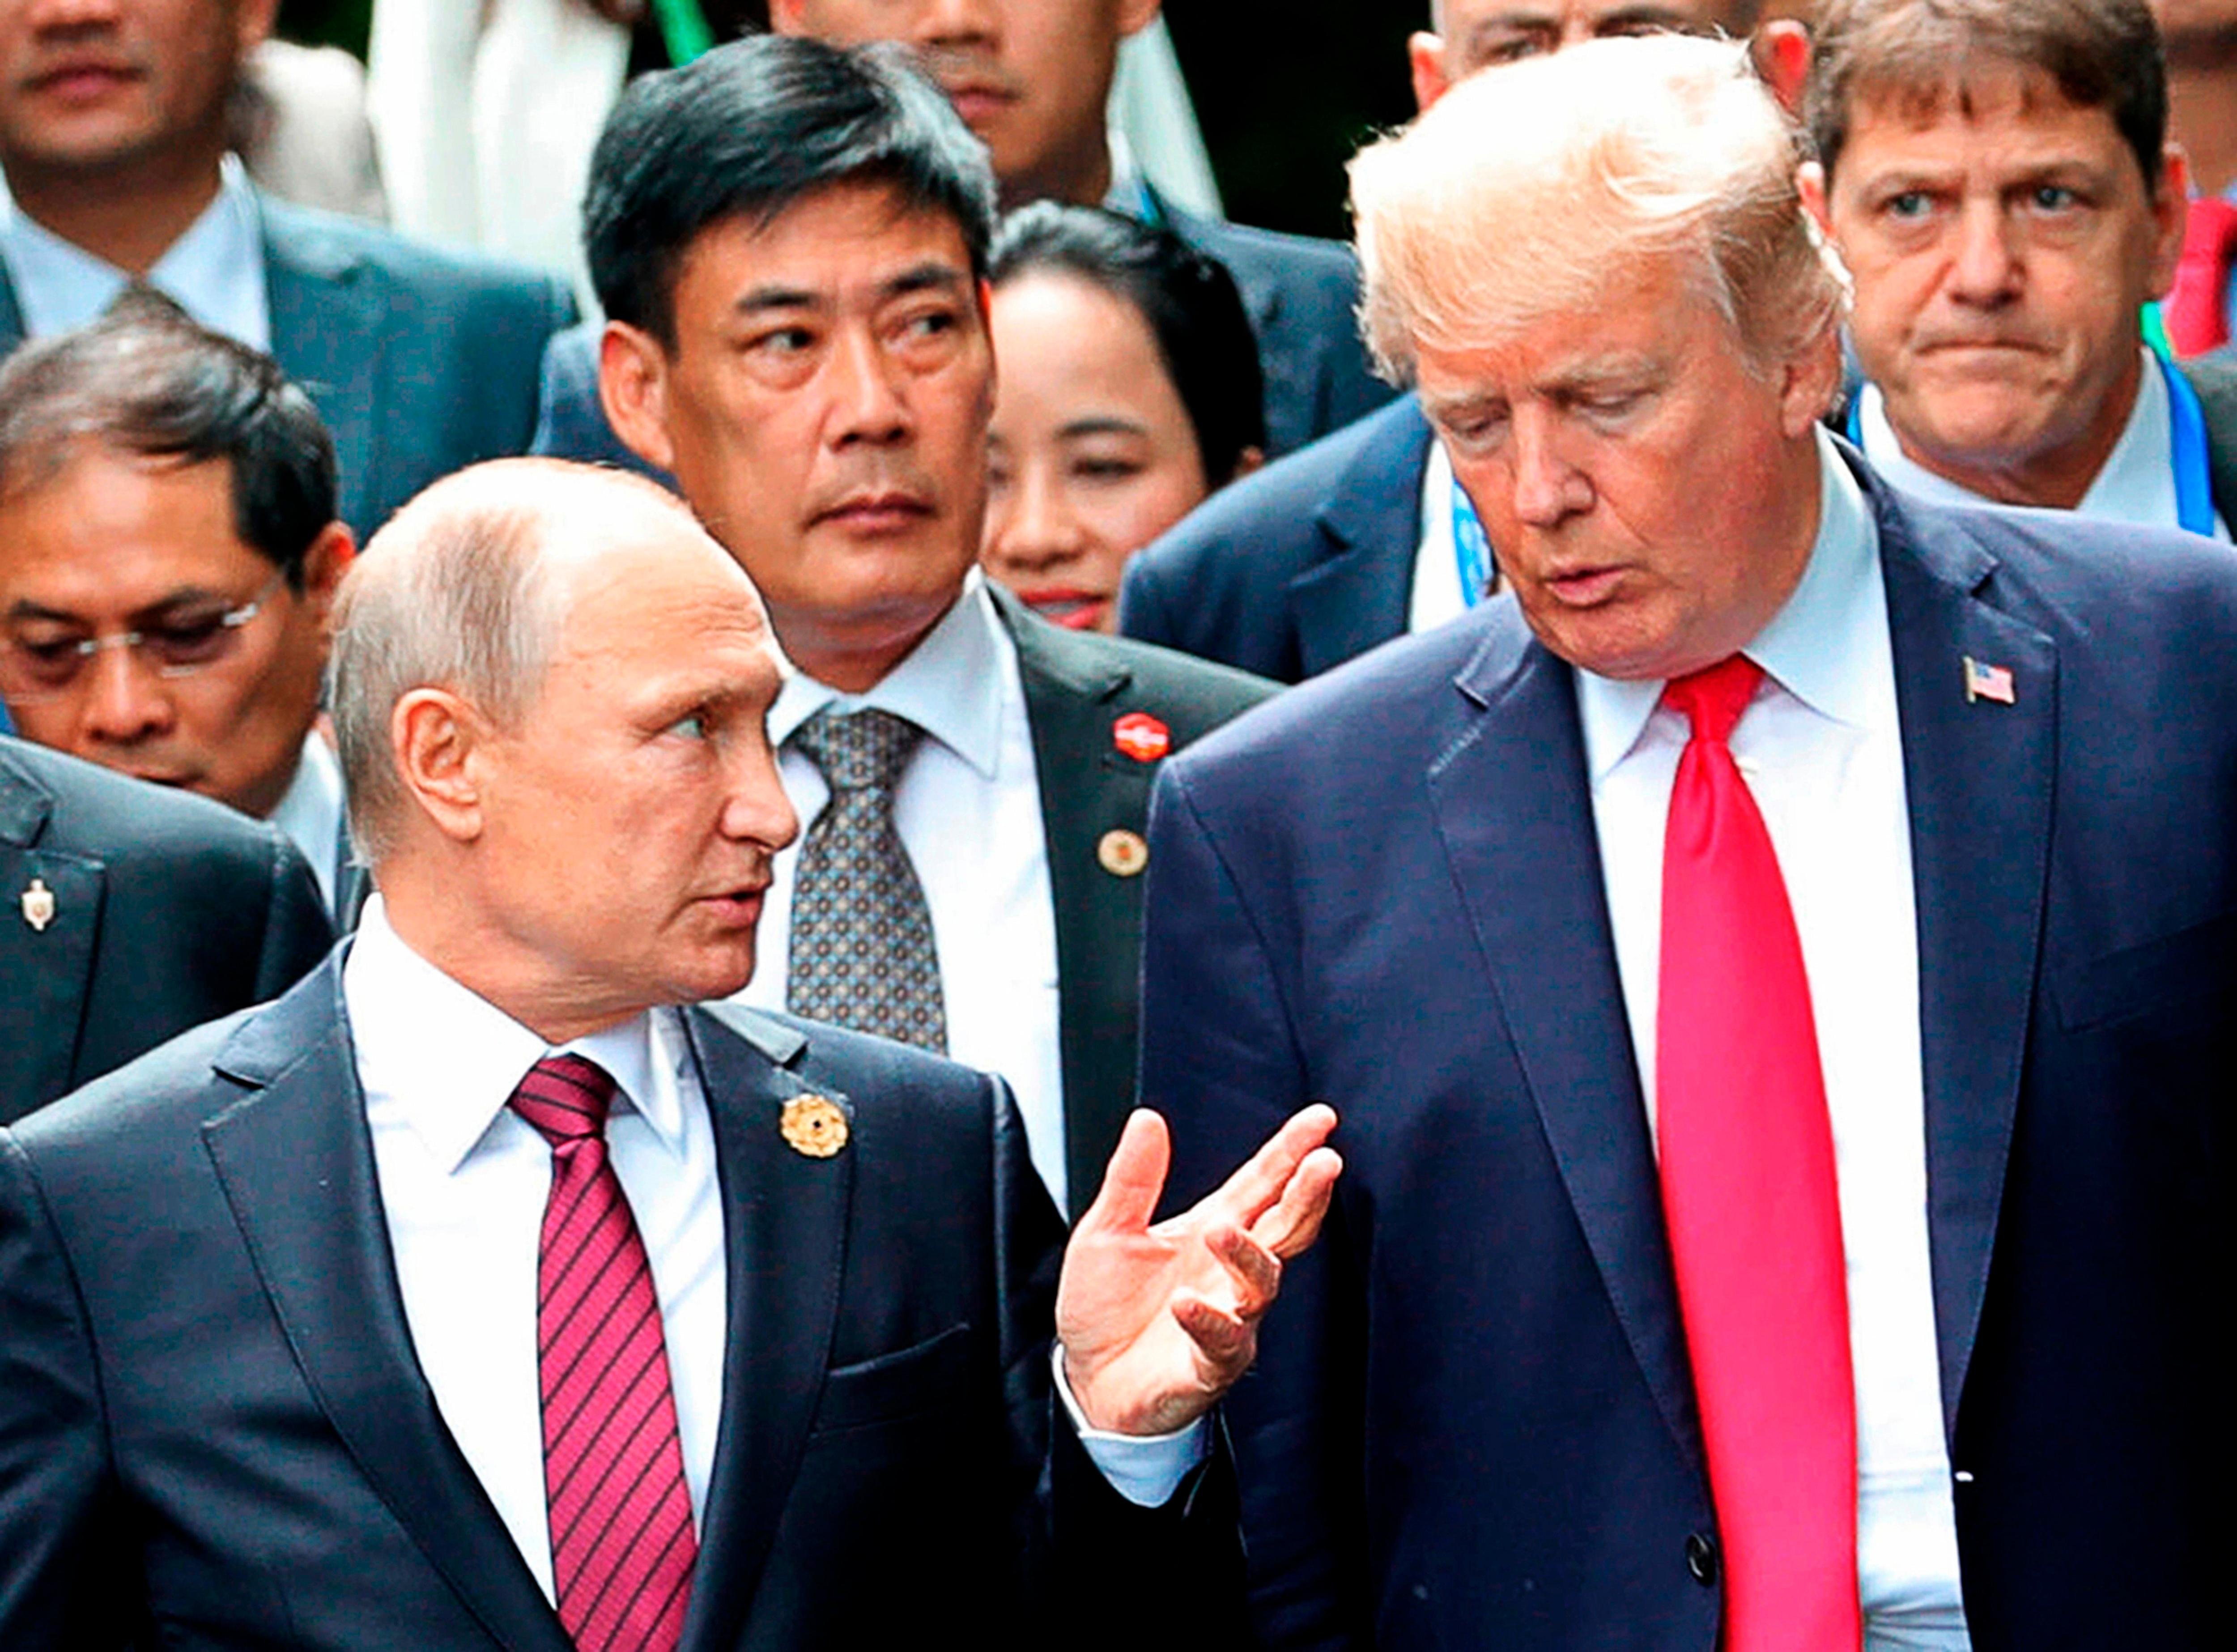 FILE - In this Nov. 11, 2017, file photo,  President Donald Trump, right, and Russia President Vladimir Putin talk during the family photo session at the APEC Summit in Danang. The Trump administration is opening the door to a potential White House meeting between Trump and Putin. It would be the first time Putin has been at the White House in more than a decade and come at a time of rising tensions between the two global powers. (Mikhail Klimentyev, Sputnik, Kremlin Pool Photo via AP)